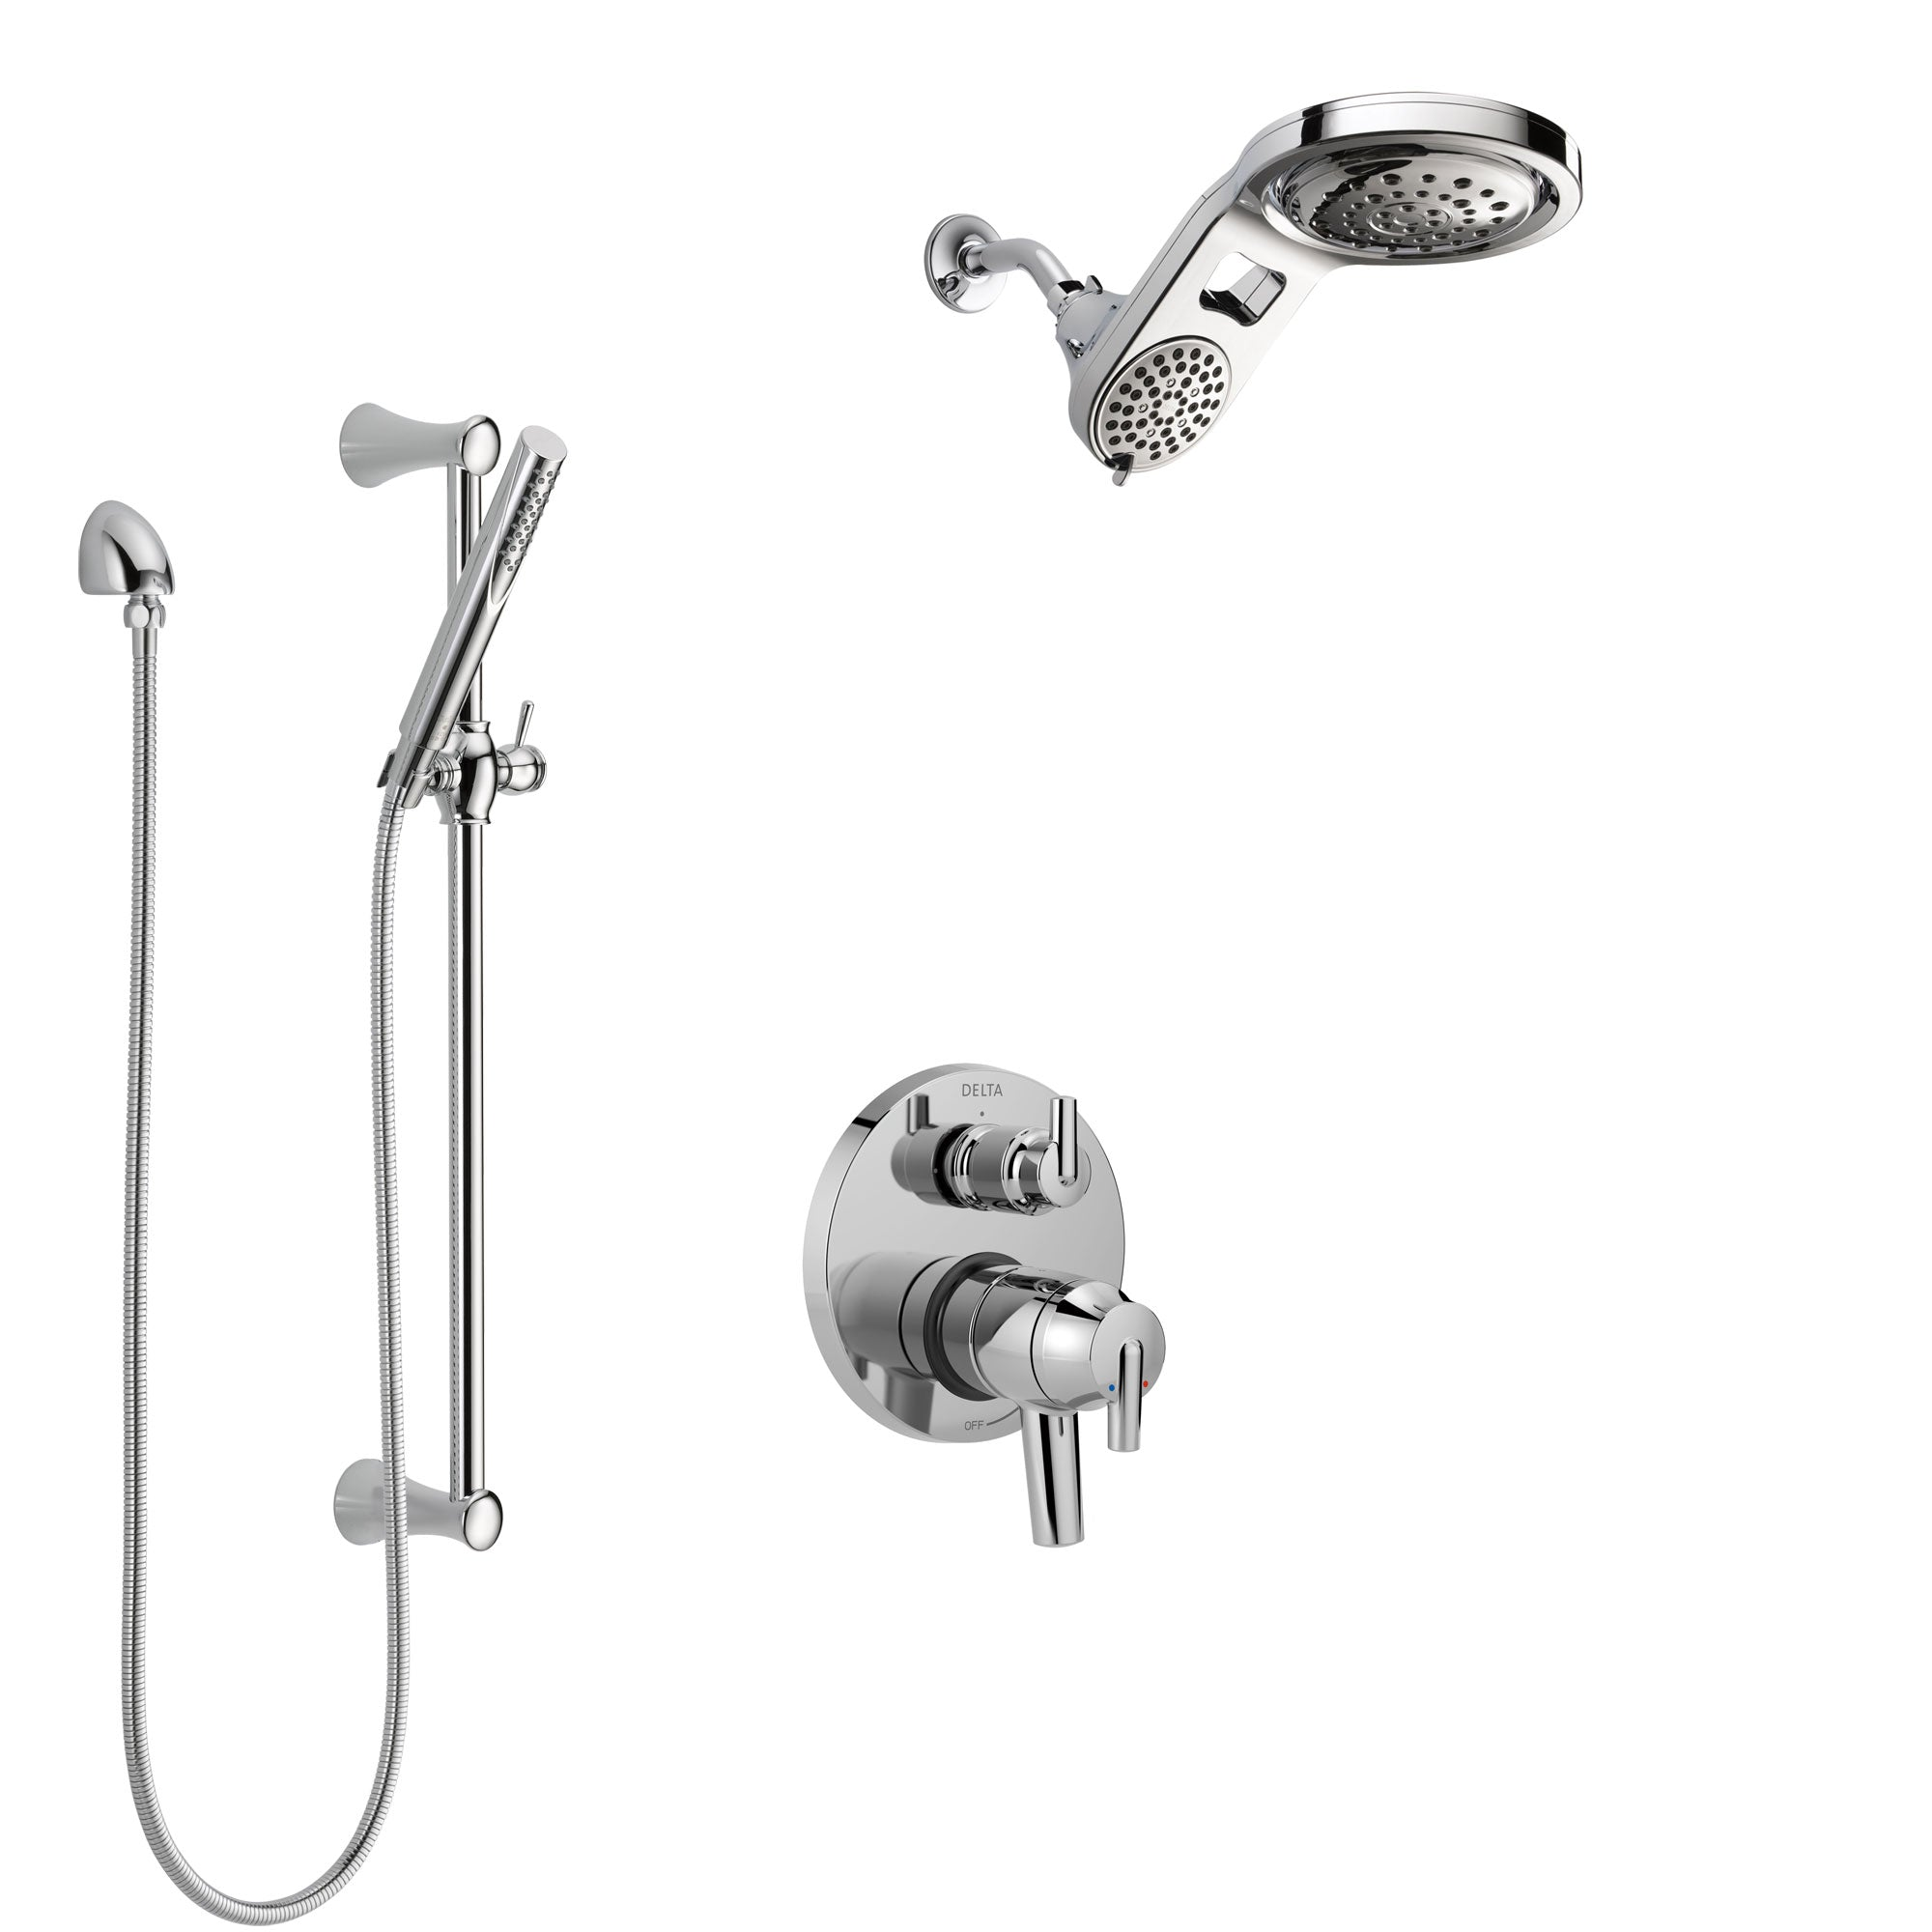 Delta Trinsic Chrome Finish Shower System with Dual Control Handle, Integrated Diverter, Dual Showerhead, and Hand Shower with Slidebar SS278599